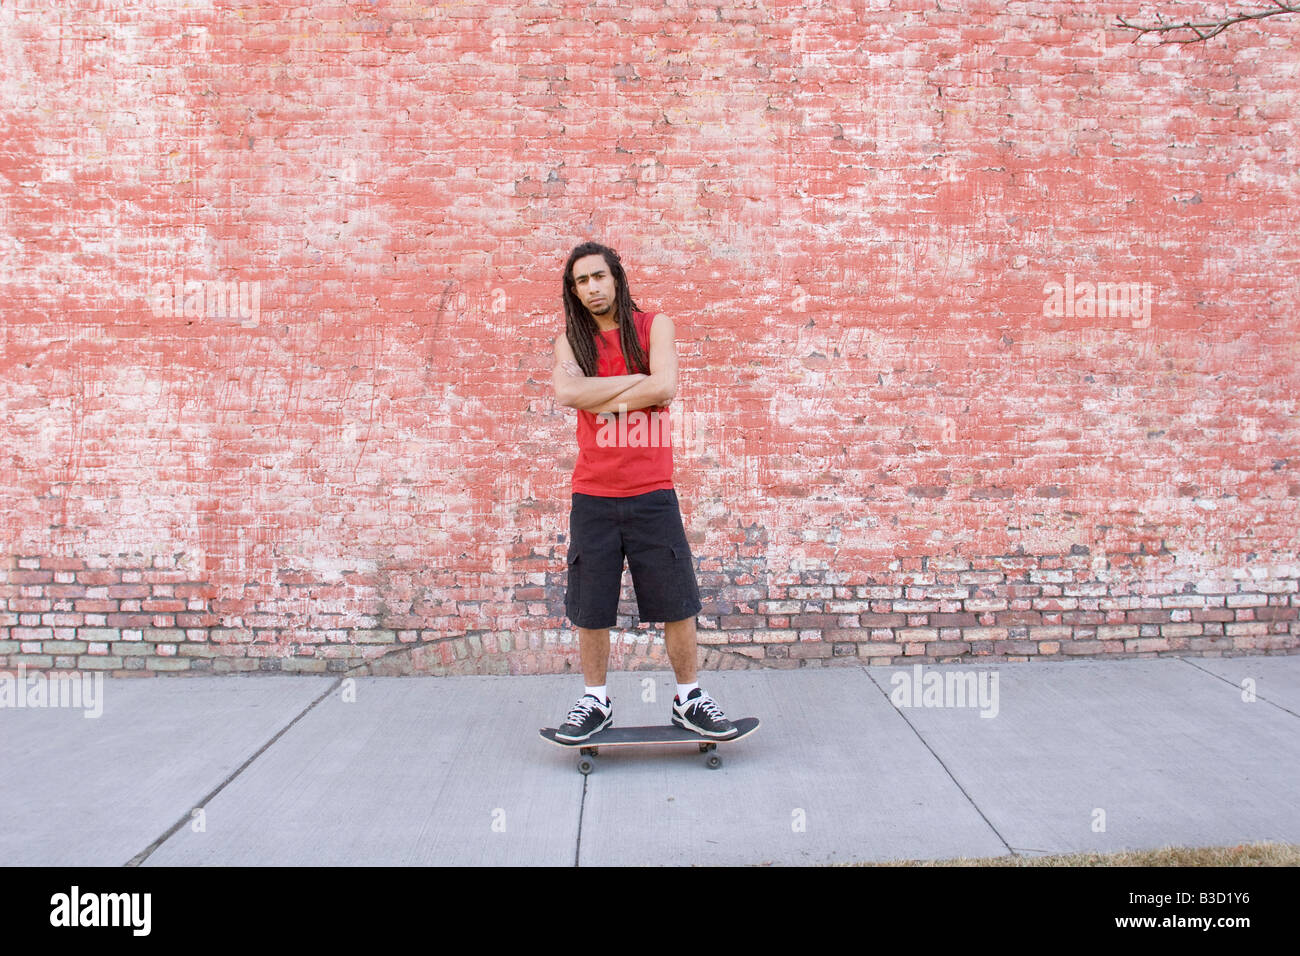 Young man standing on skateboard, portrait - Stock Image